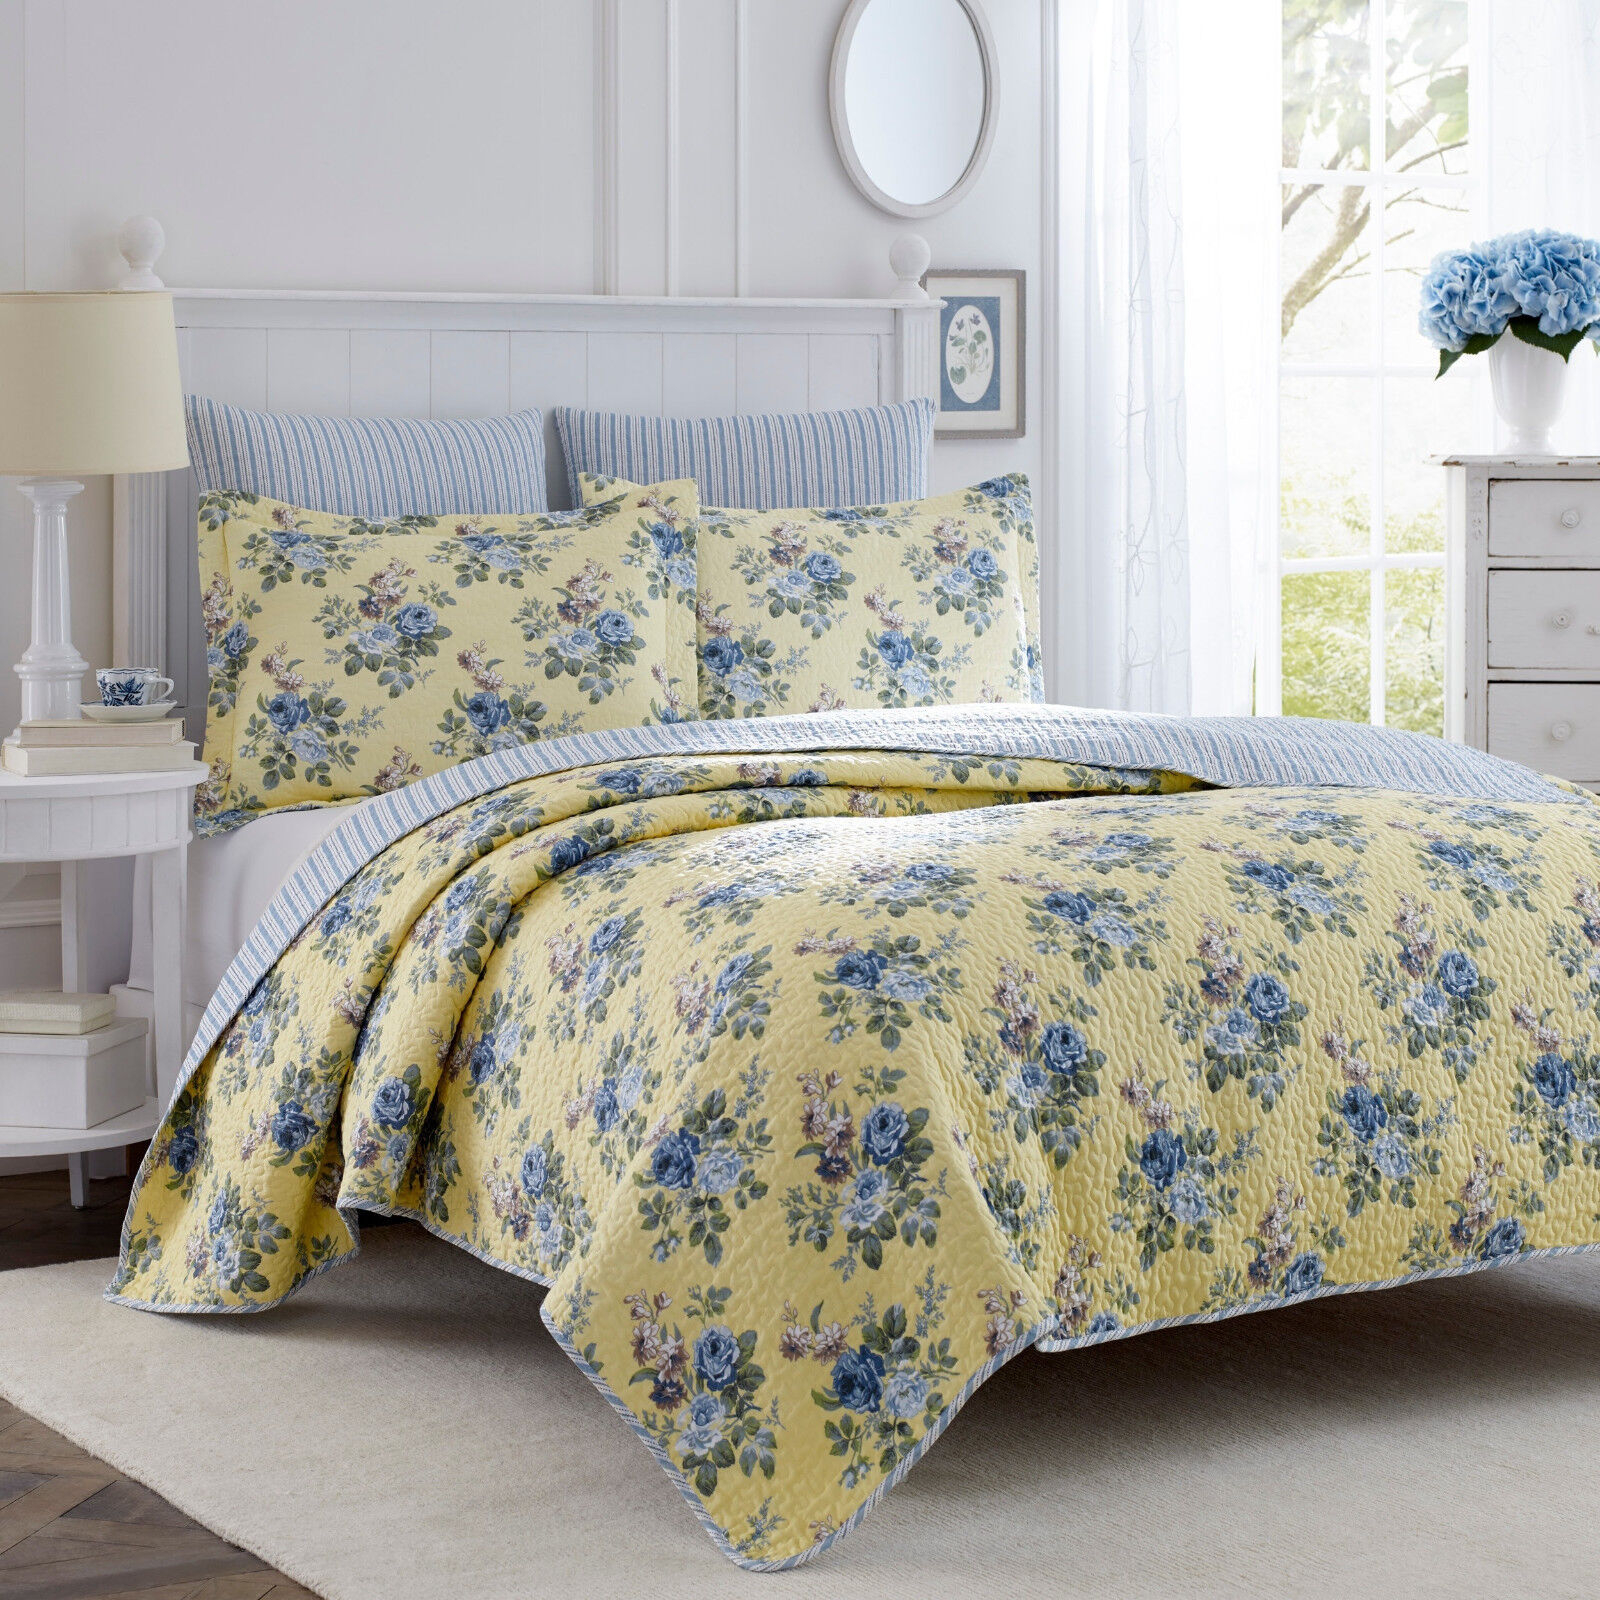 LAURA ASHLEY KING 3-PC COTTON blueE YELLOW FLORAL REVERSIBLE Bedspread QUILT SET